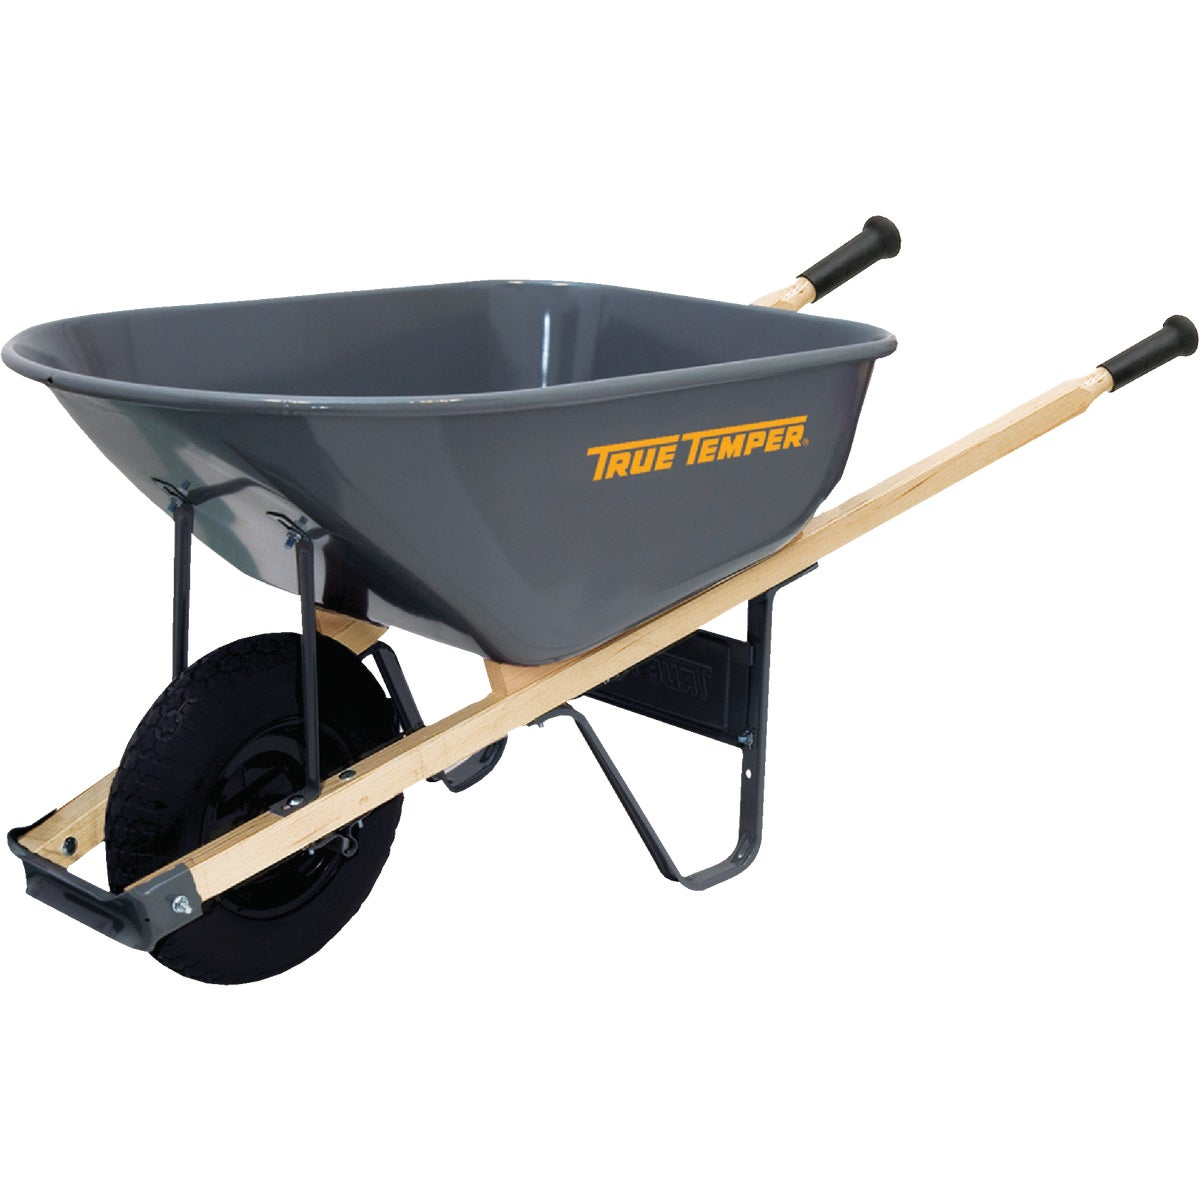 6 CU FT STL WHEELBARROW - T6FFUSA by Ames True Temper